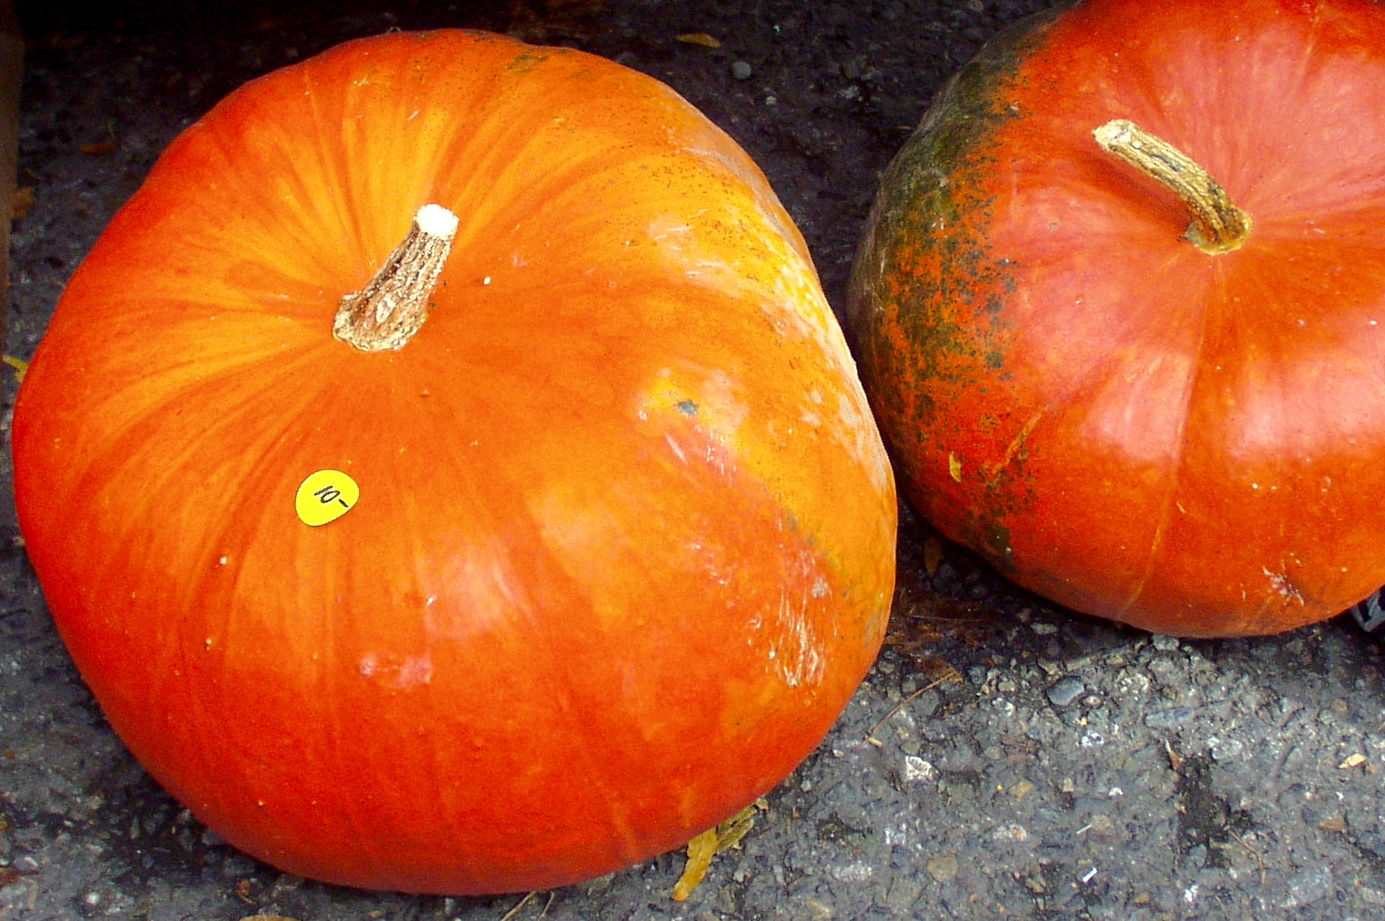 Cinderella pumpkins from G & J Orchards. Photo copyright 2009 by Zachary D. Lyons.